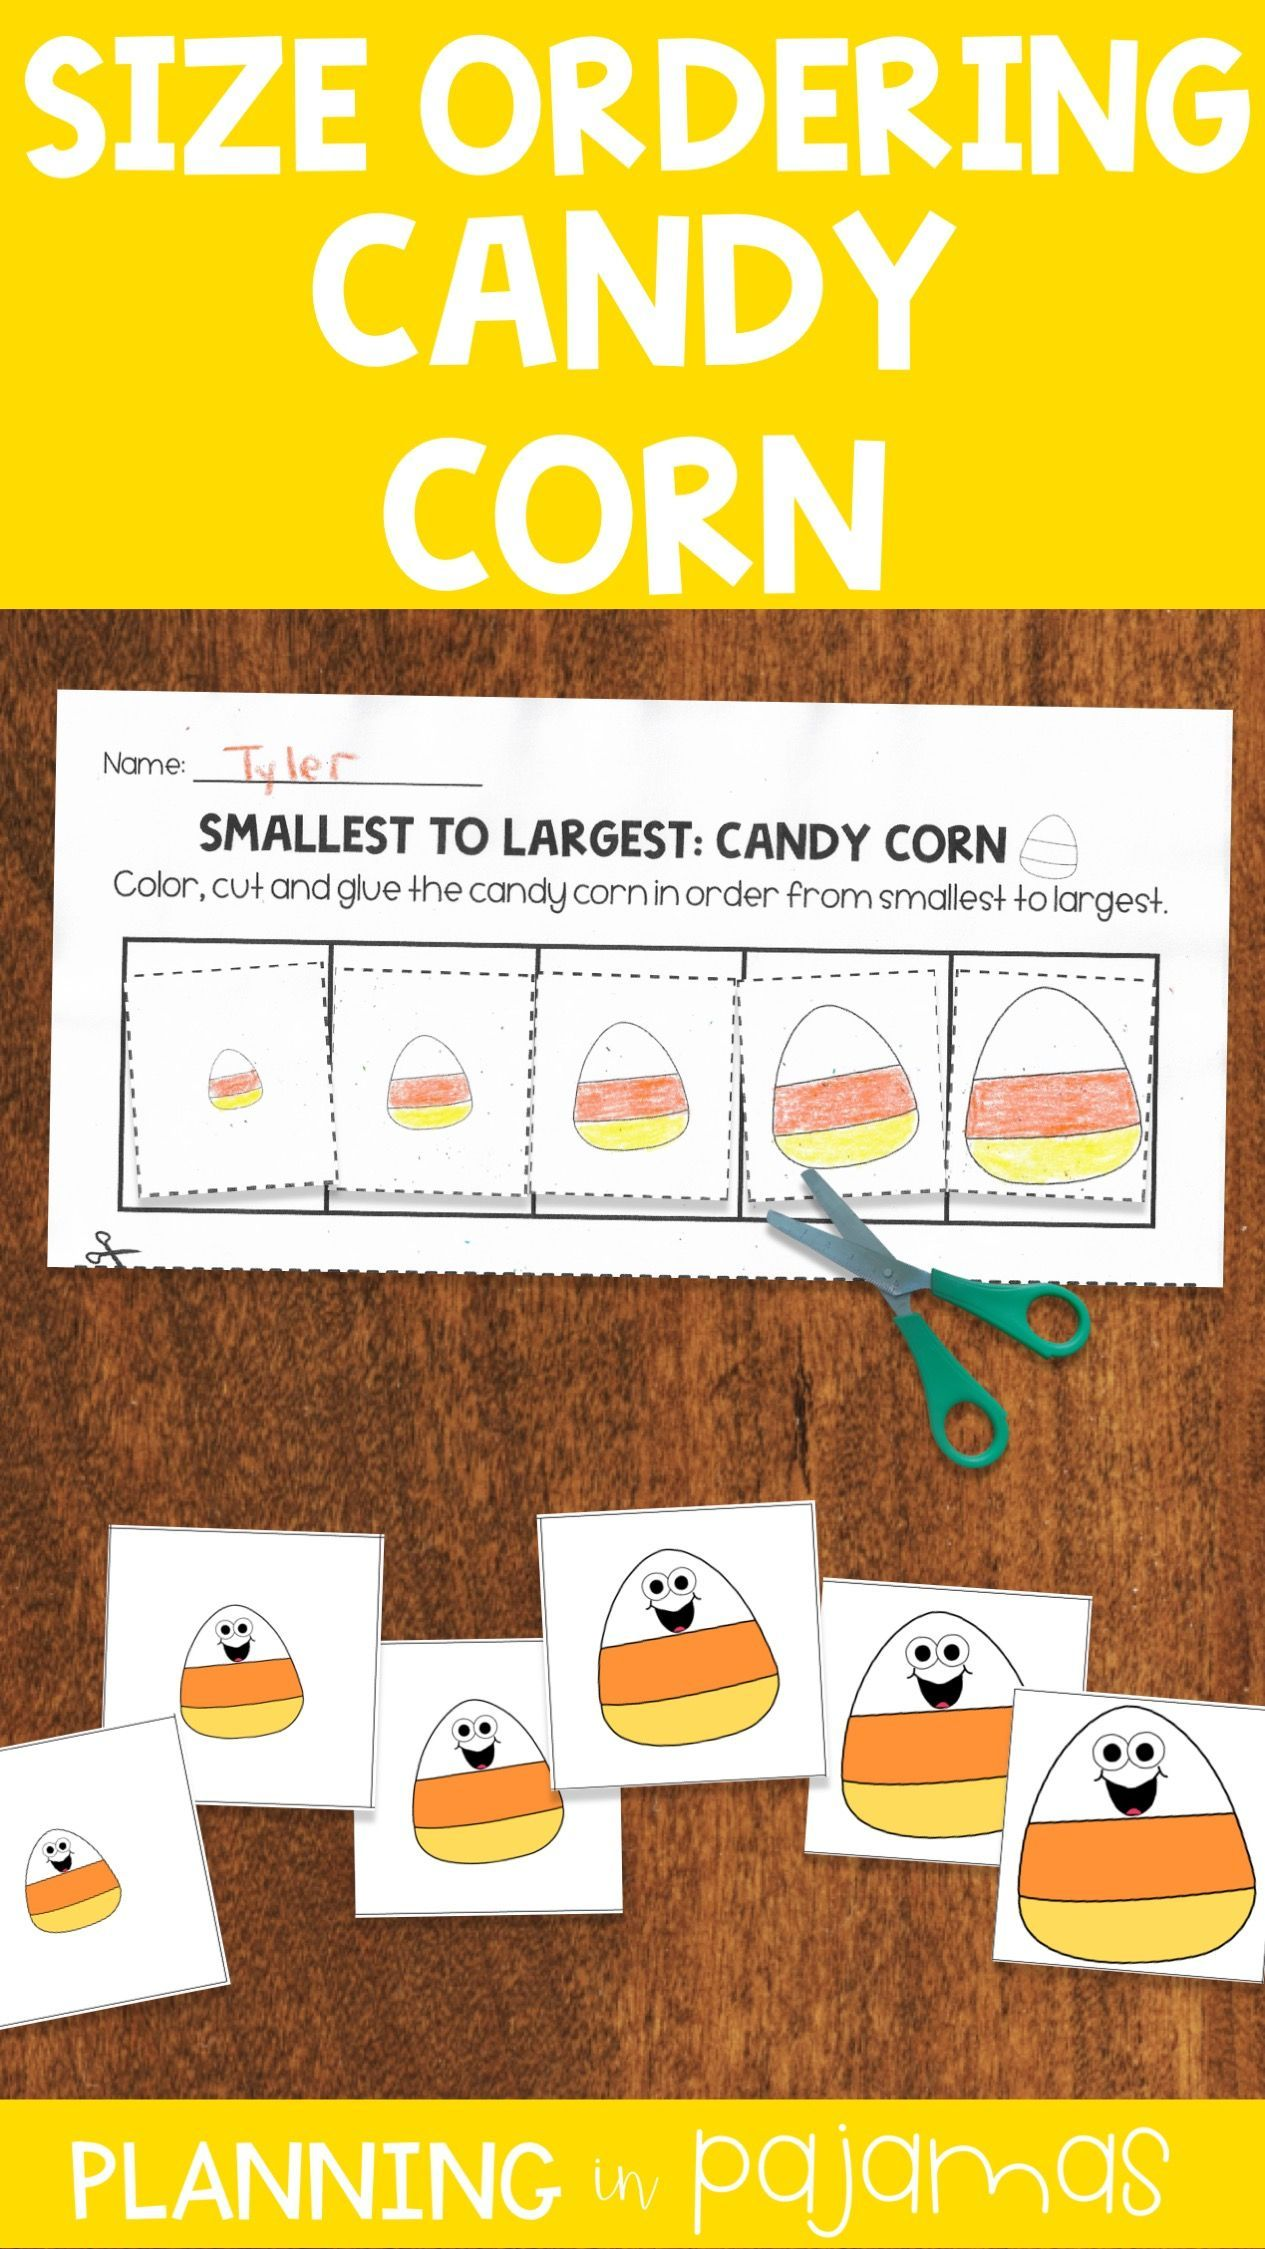 Candy Corn Size Ordering Cards And Worksheet To Add To A